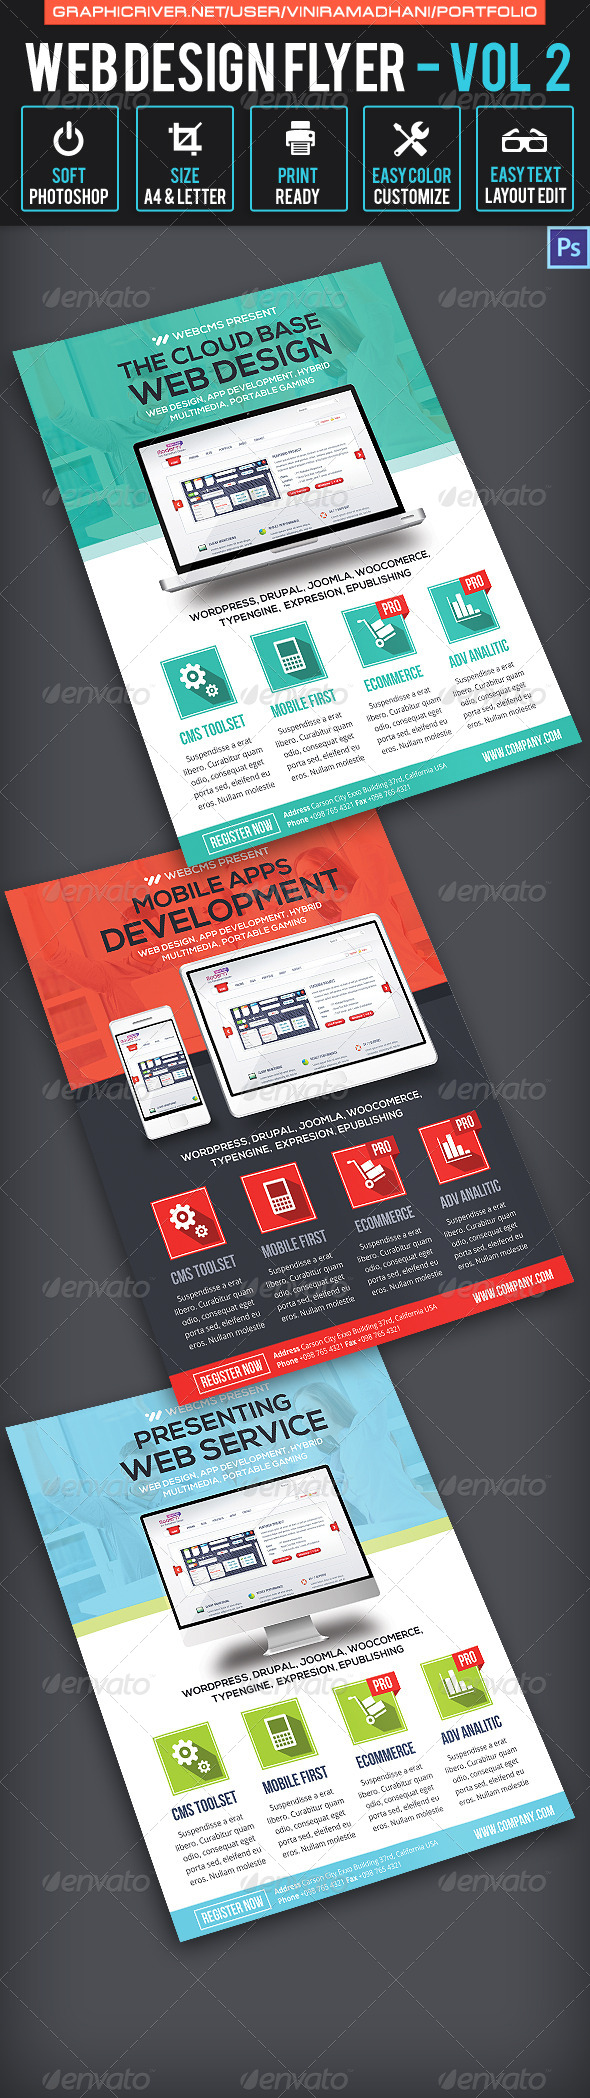 GraphicRiver Web Design Flyer Volume 2 6537468